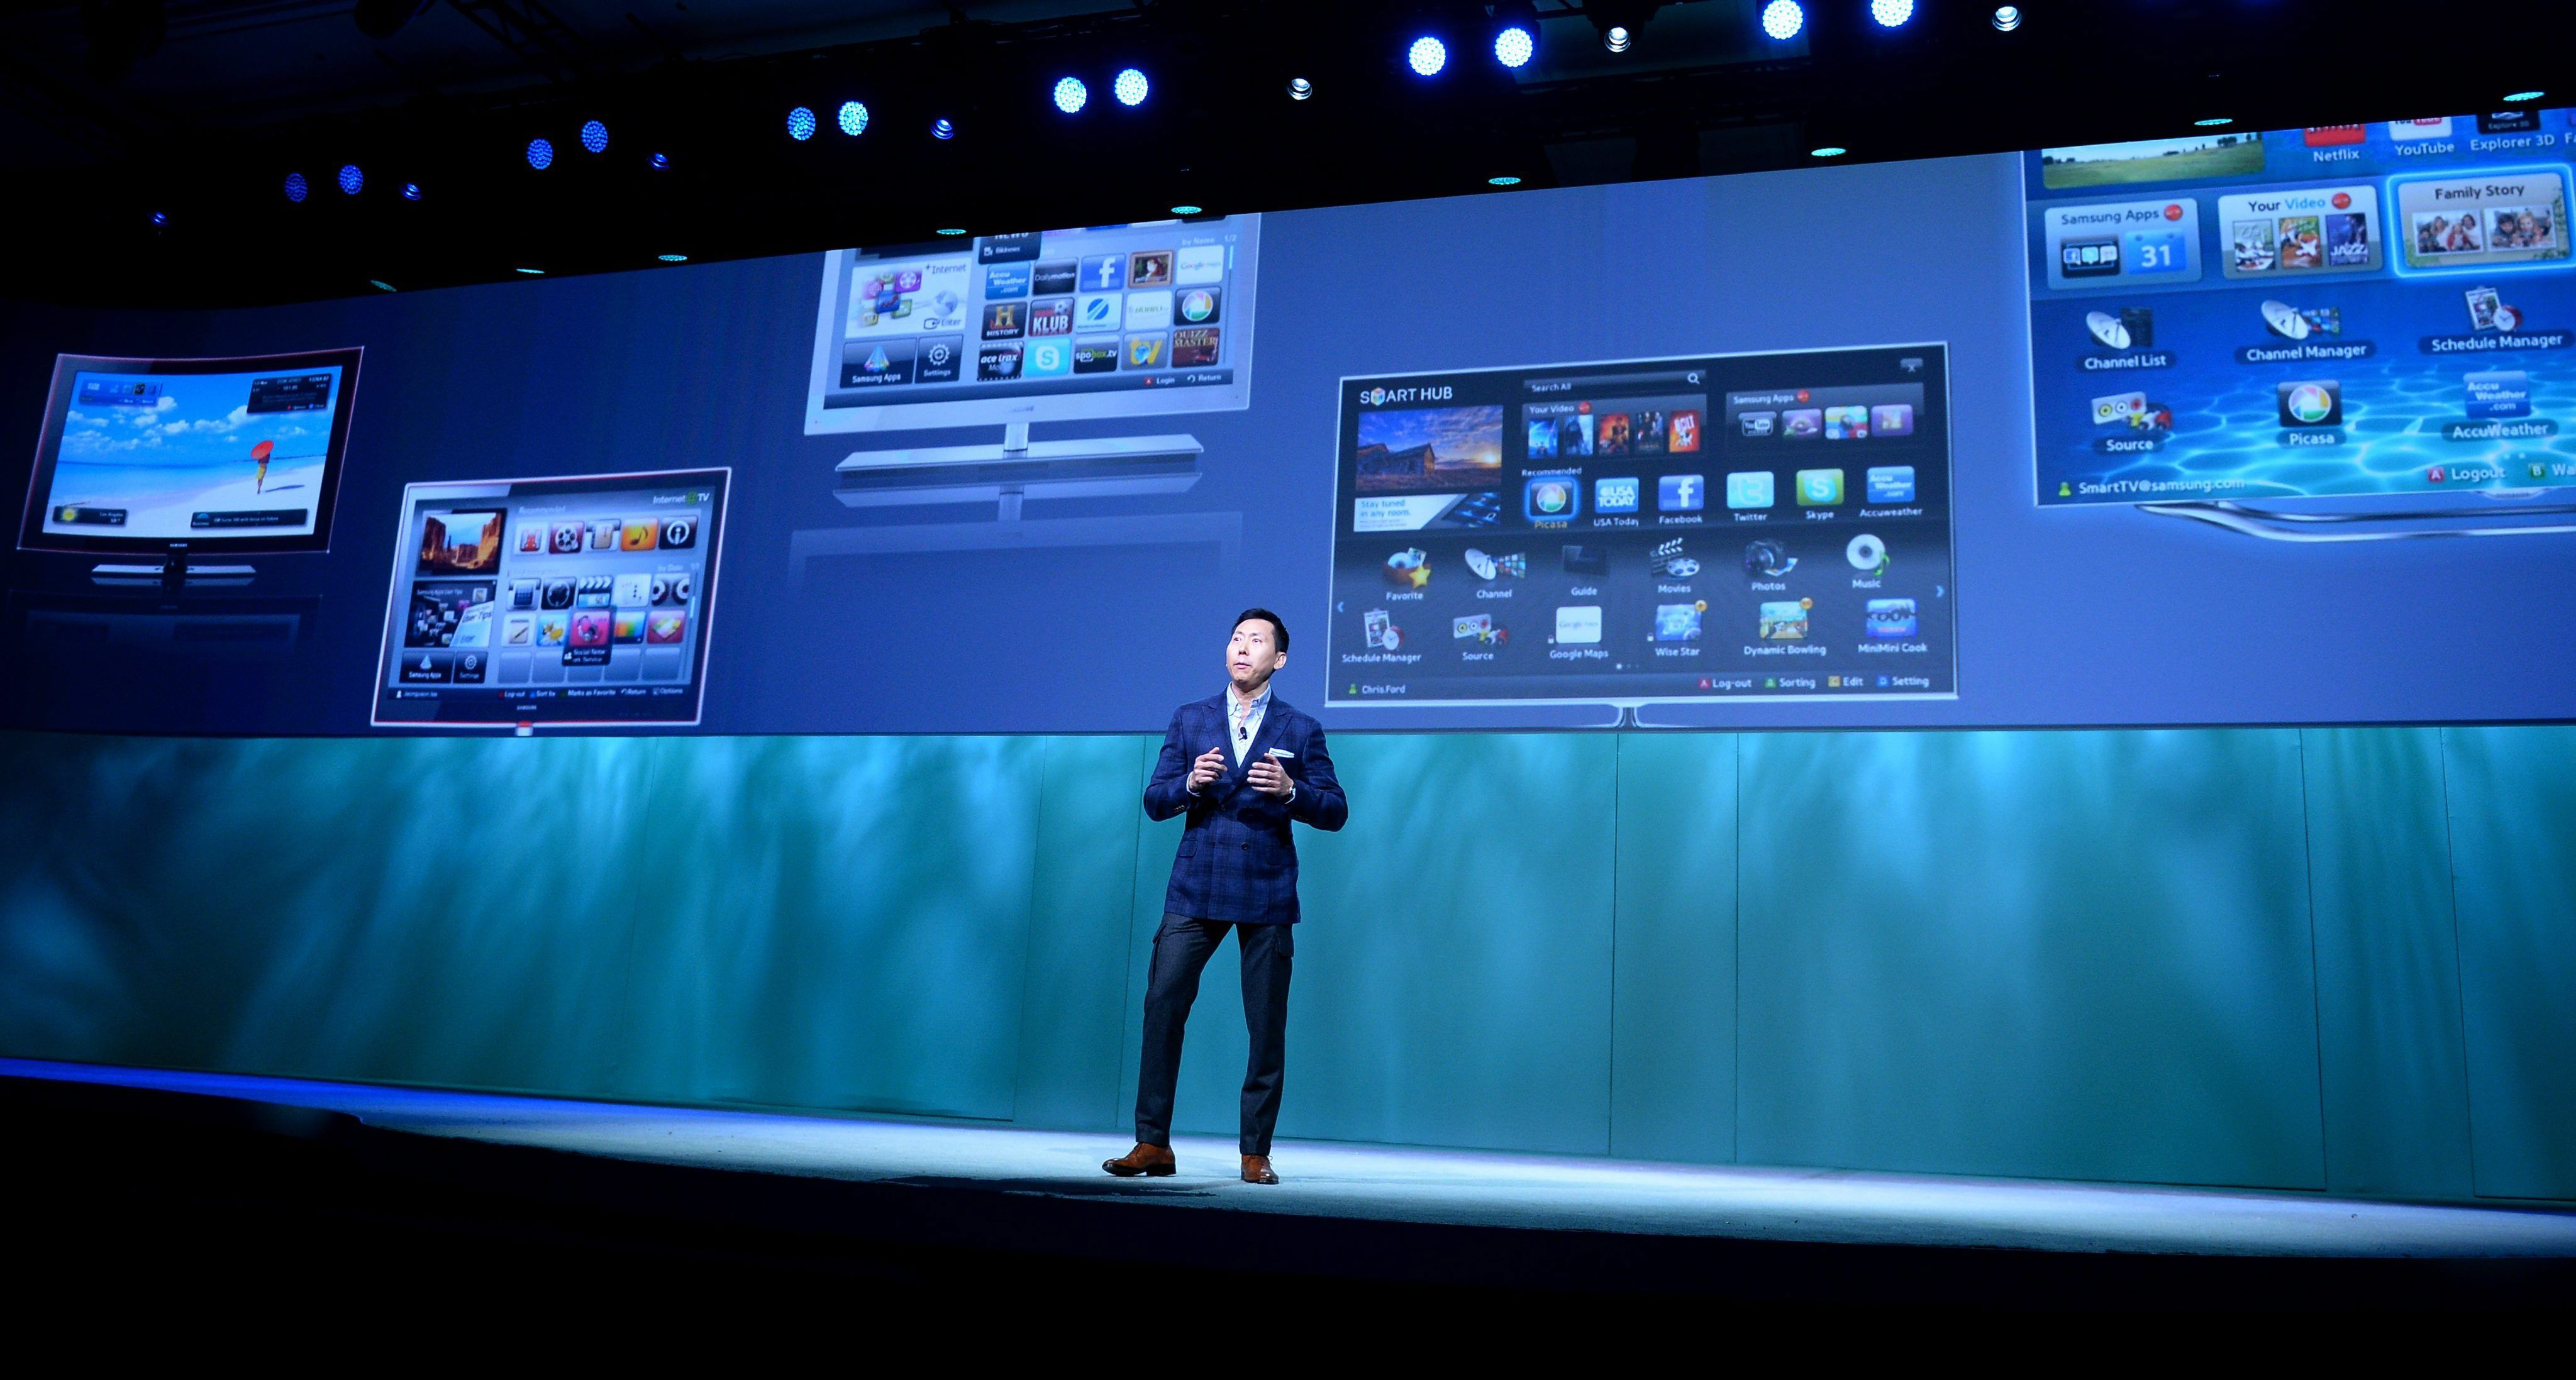 Samsung Electronics launches Tizen smartphone in India, Technology